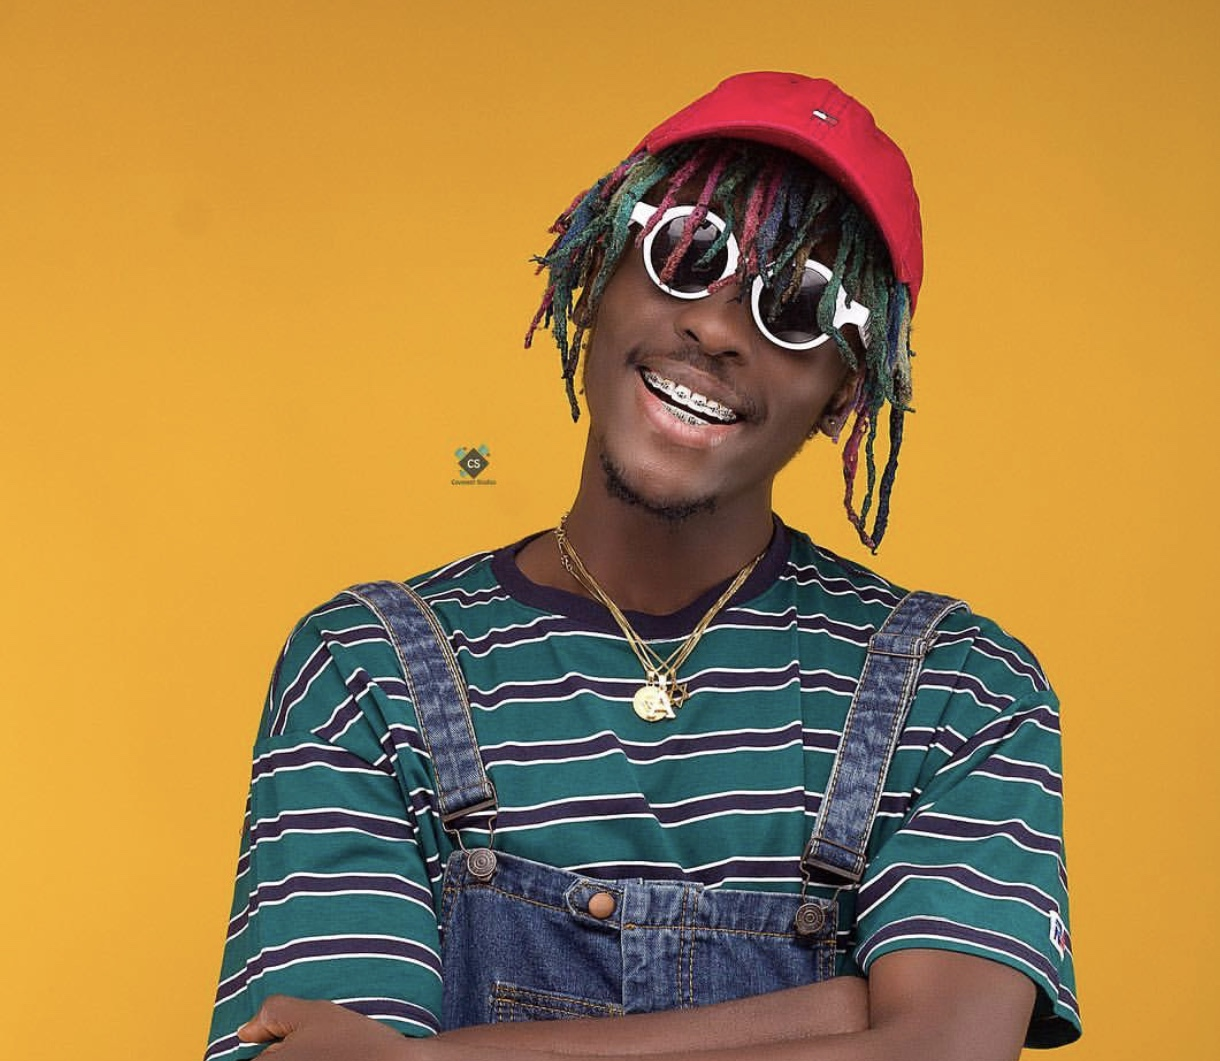 New school rappers are not asking for public sympathy, we just rap about real life issues – Kofi Mole